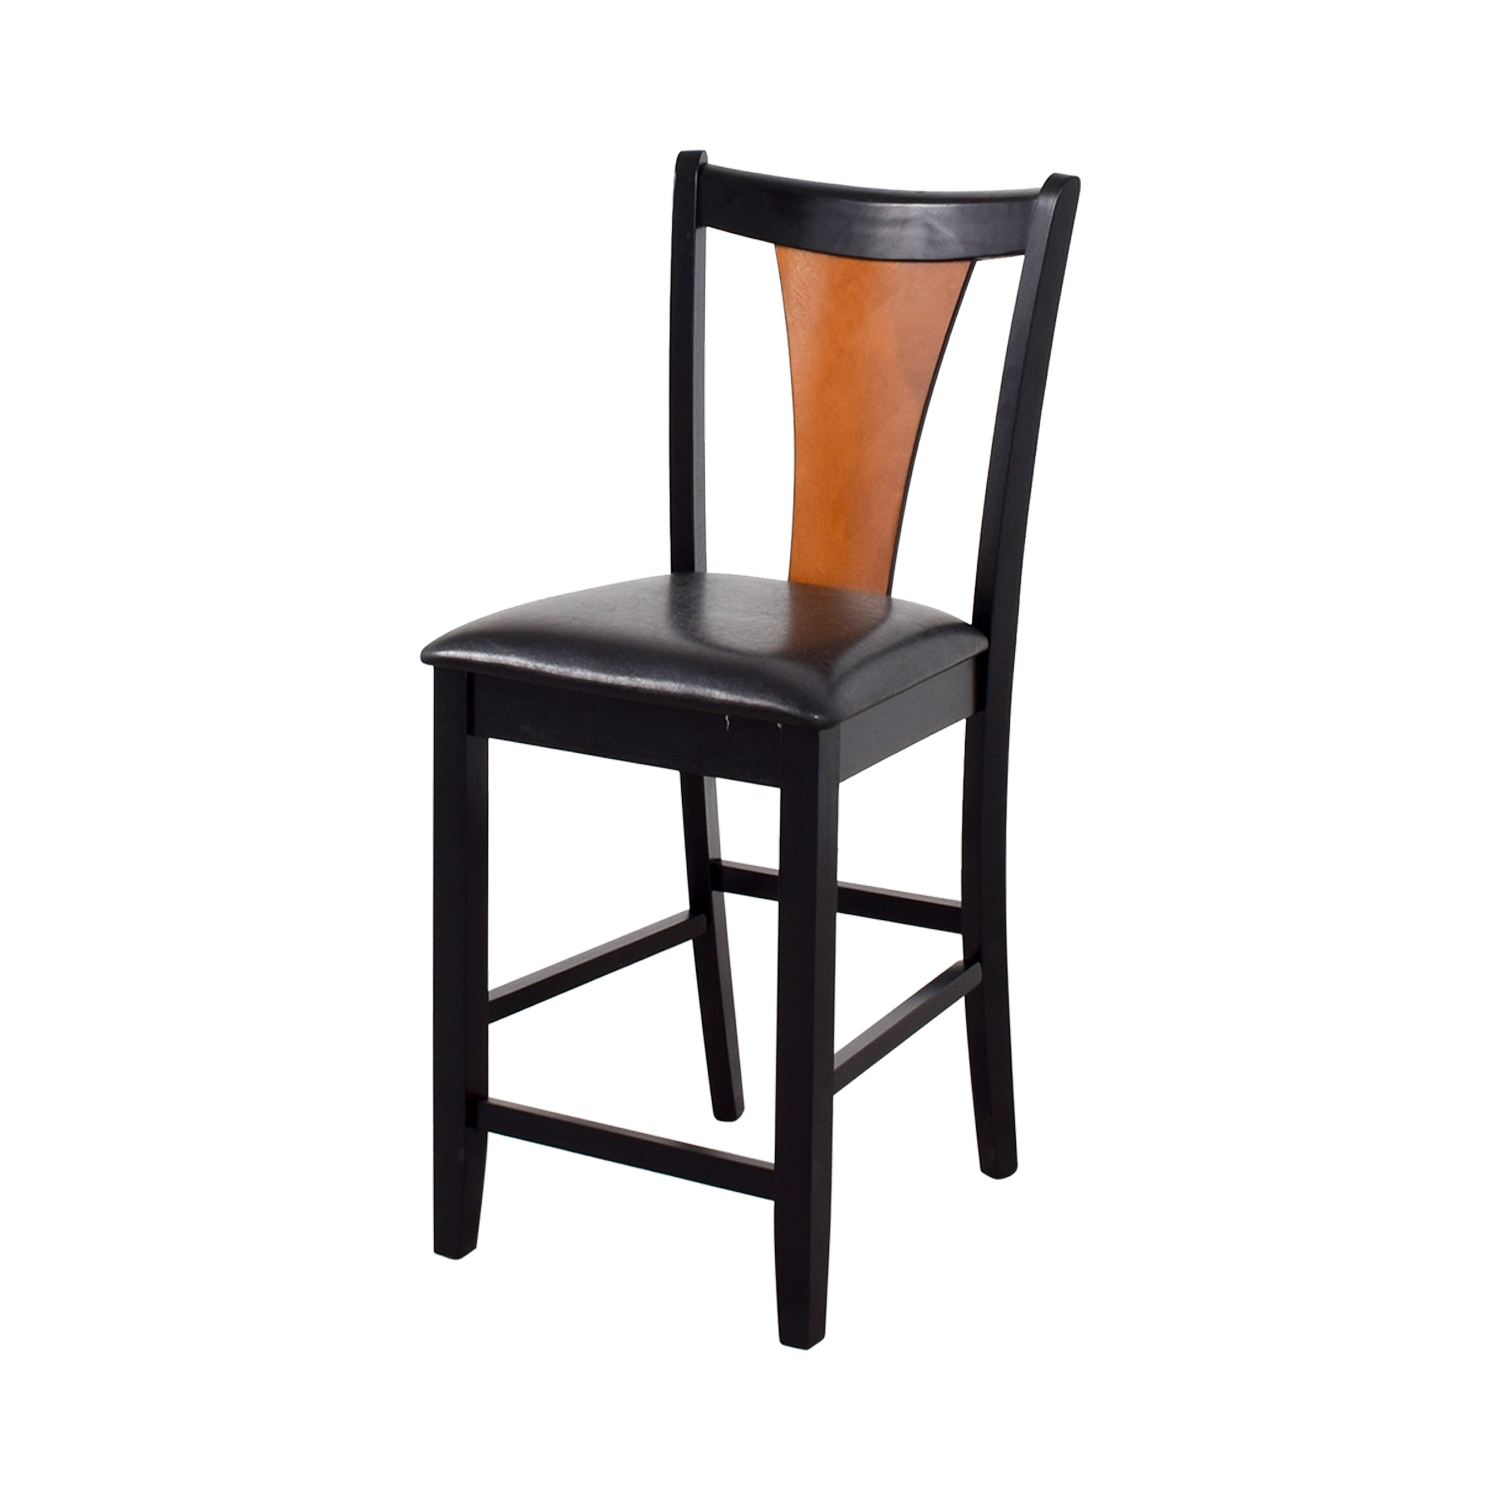 90 OFF  Coaster Furniture Coaster Furniture AmberBlack